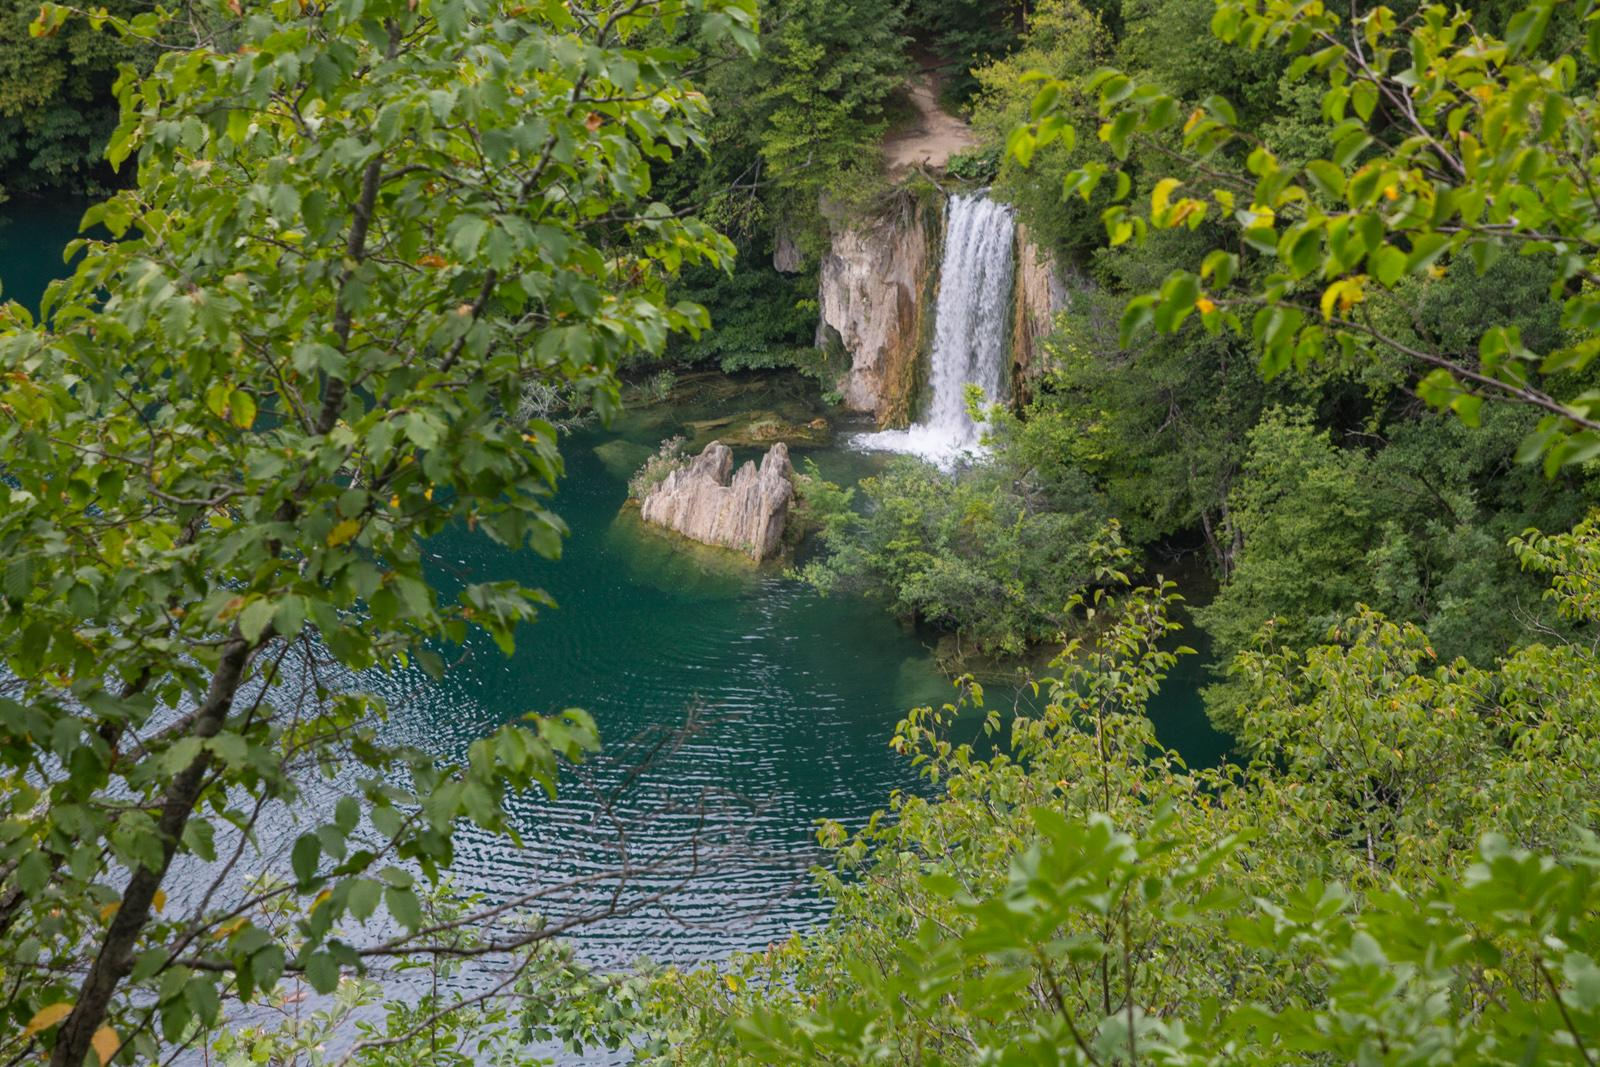 Waterfall in Plitvice Lakes National Park